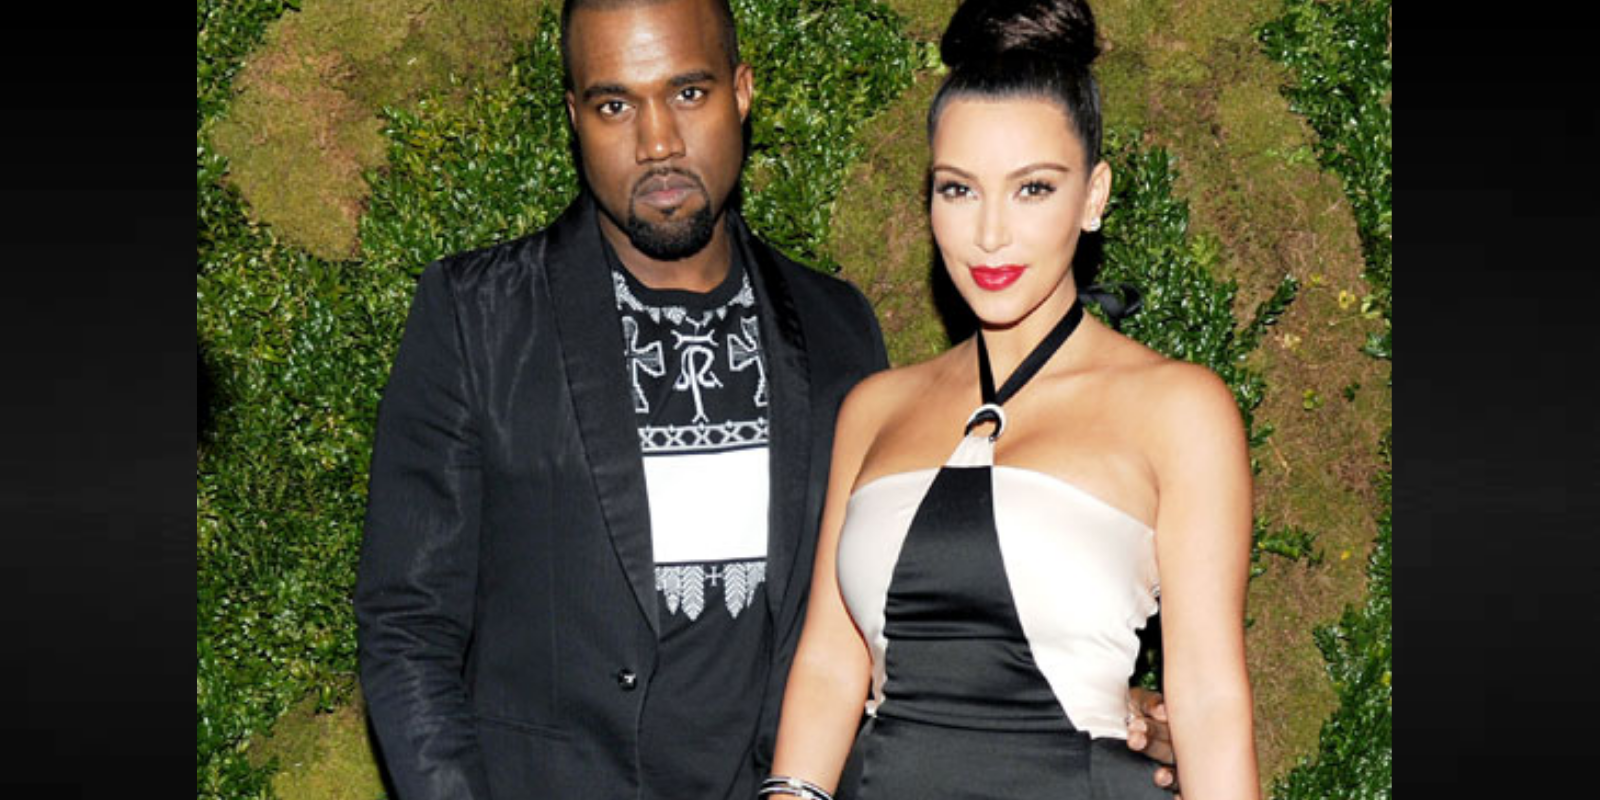 Kanye West and Kim Kardashian reported to be splitting up